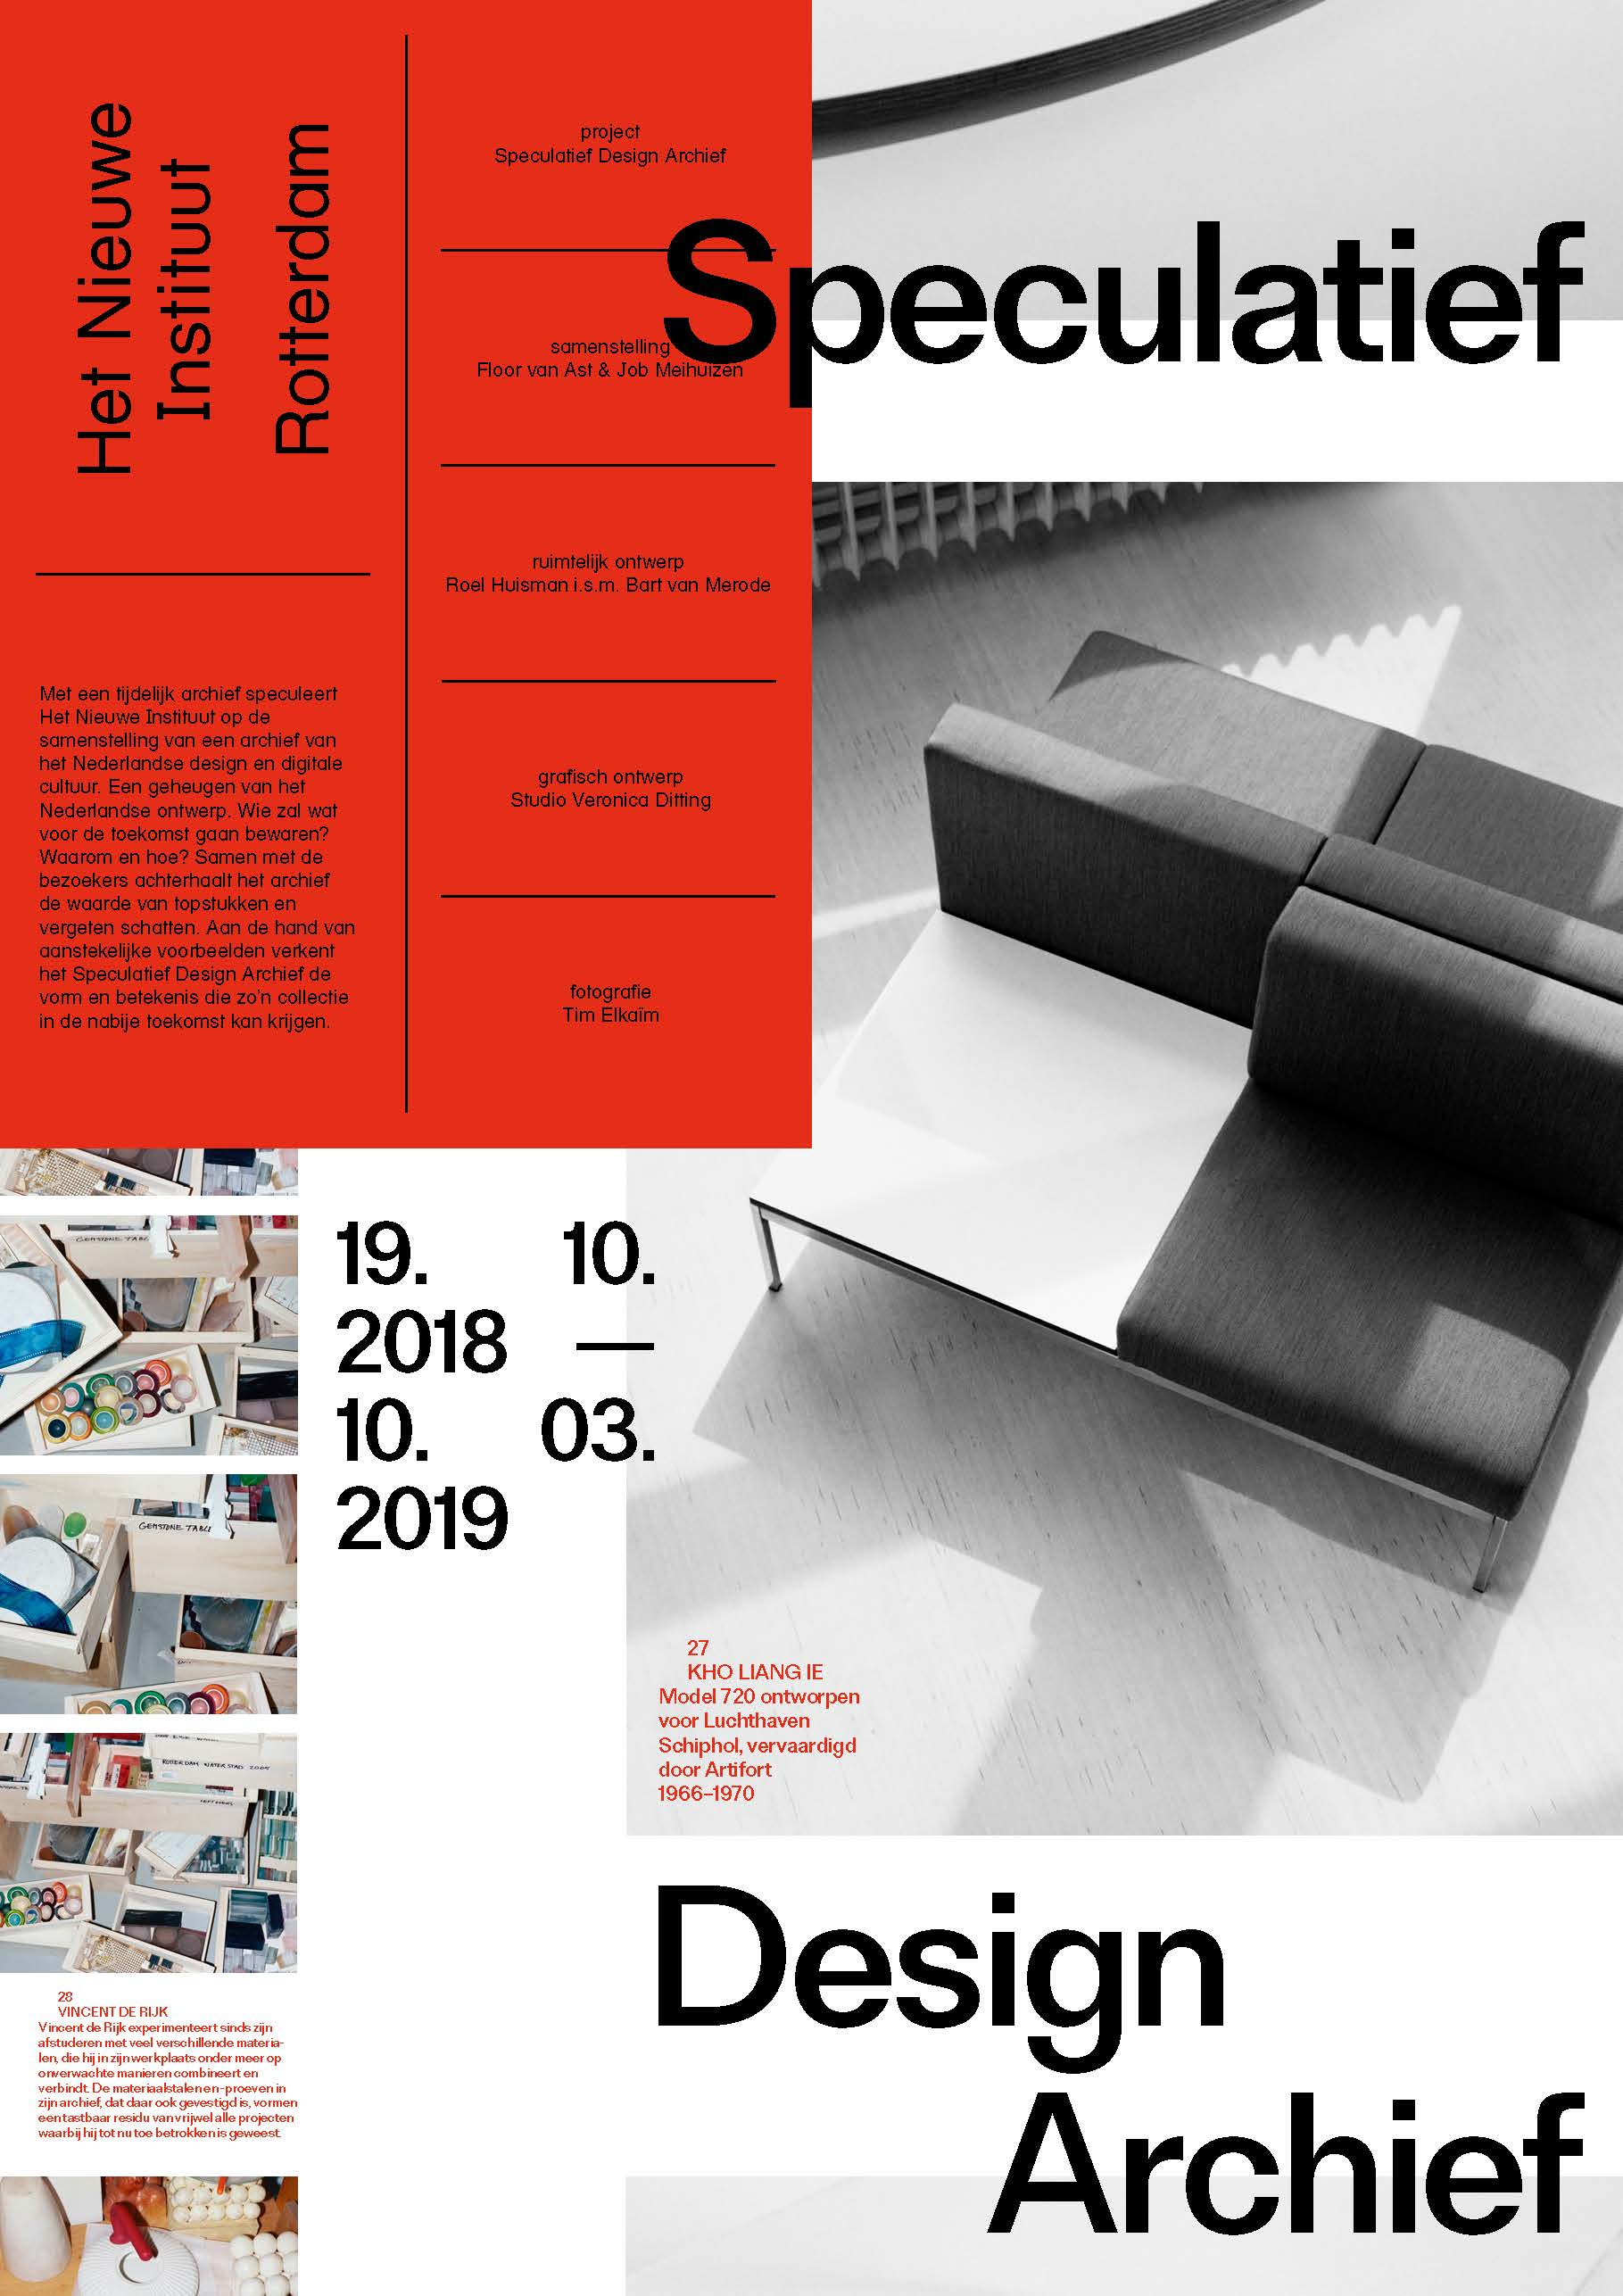 Speculative Design Archive